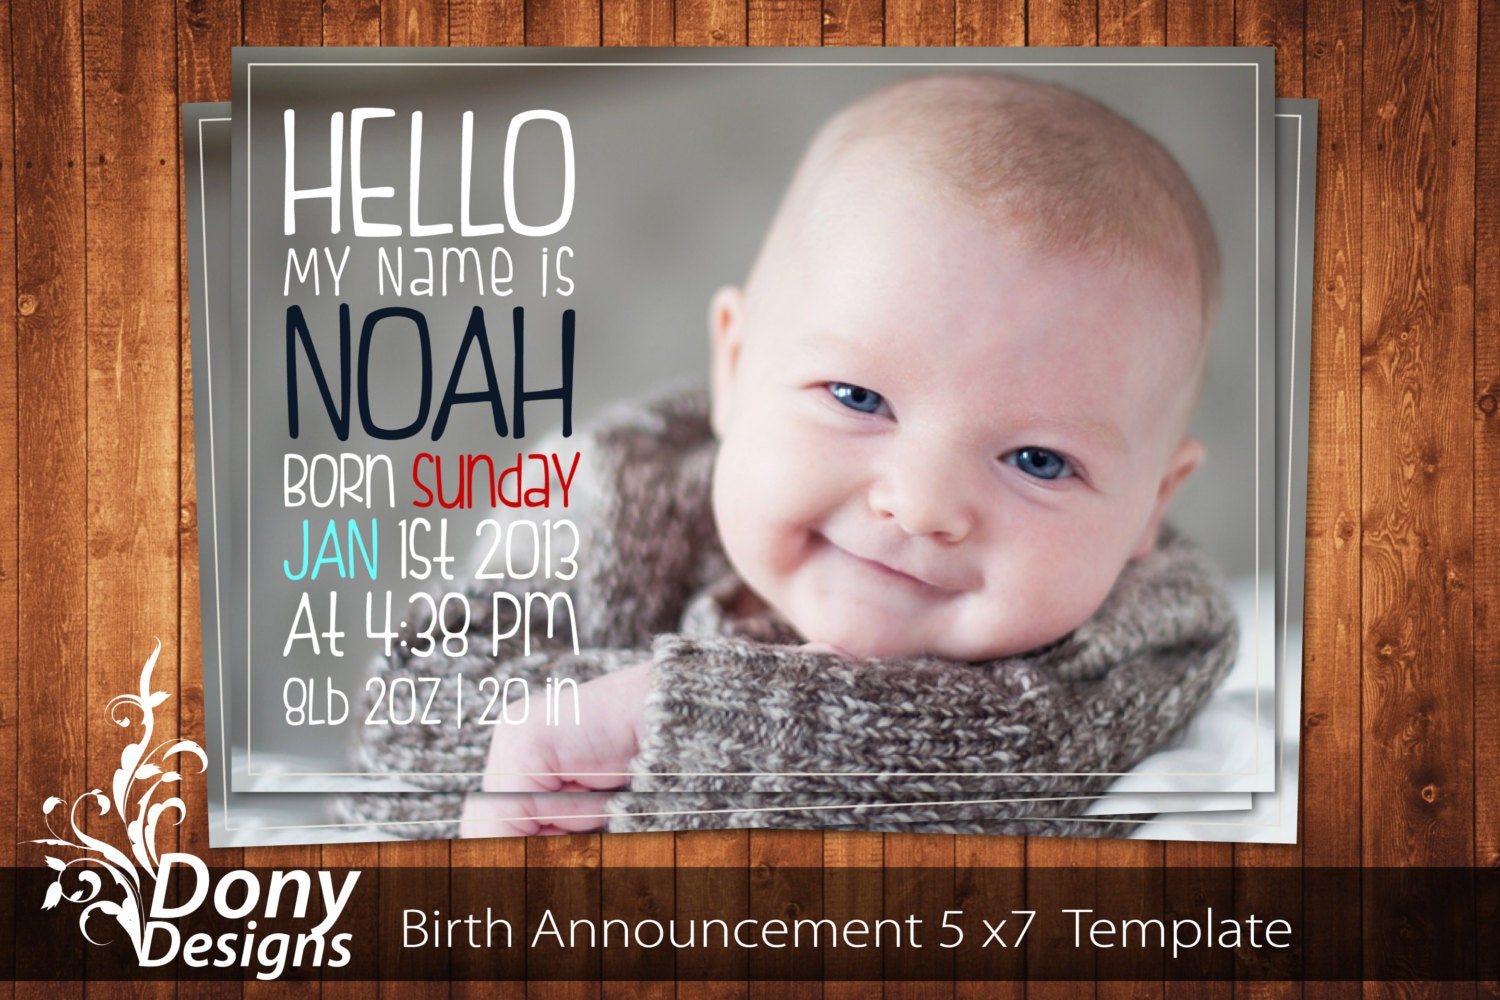 free online birth announcements templates - buy 1 get 1 free birth announcement neutral baby by